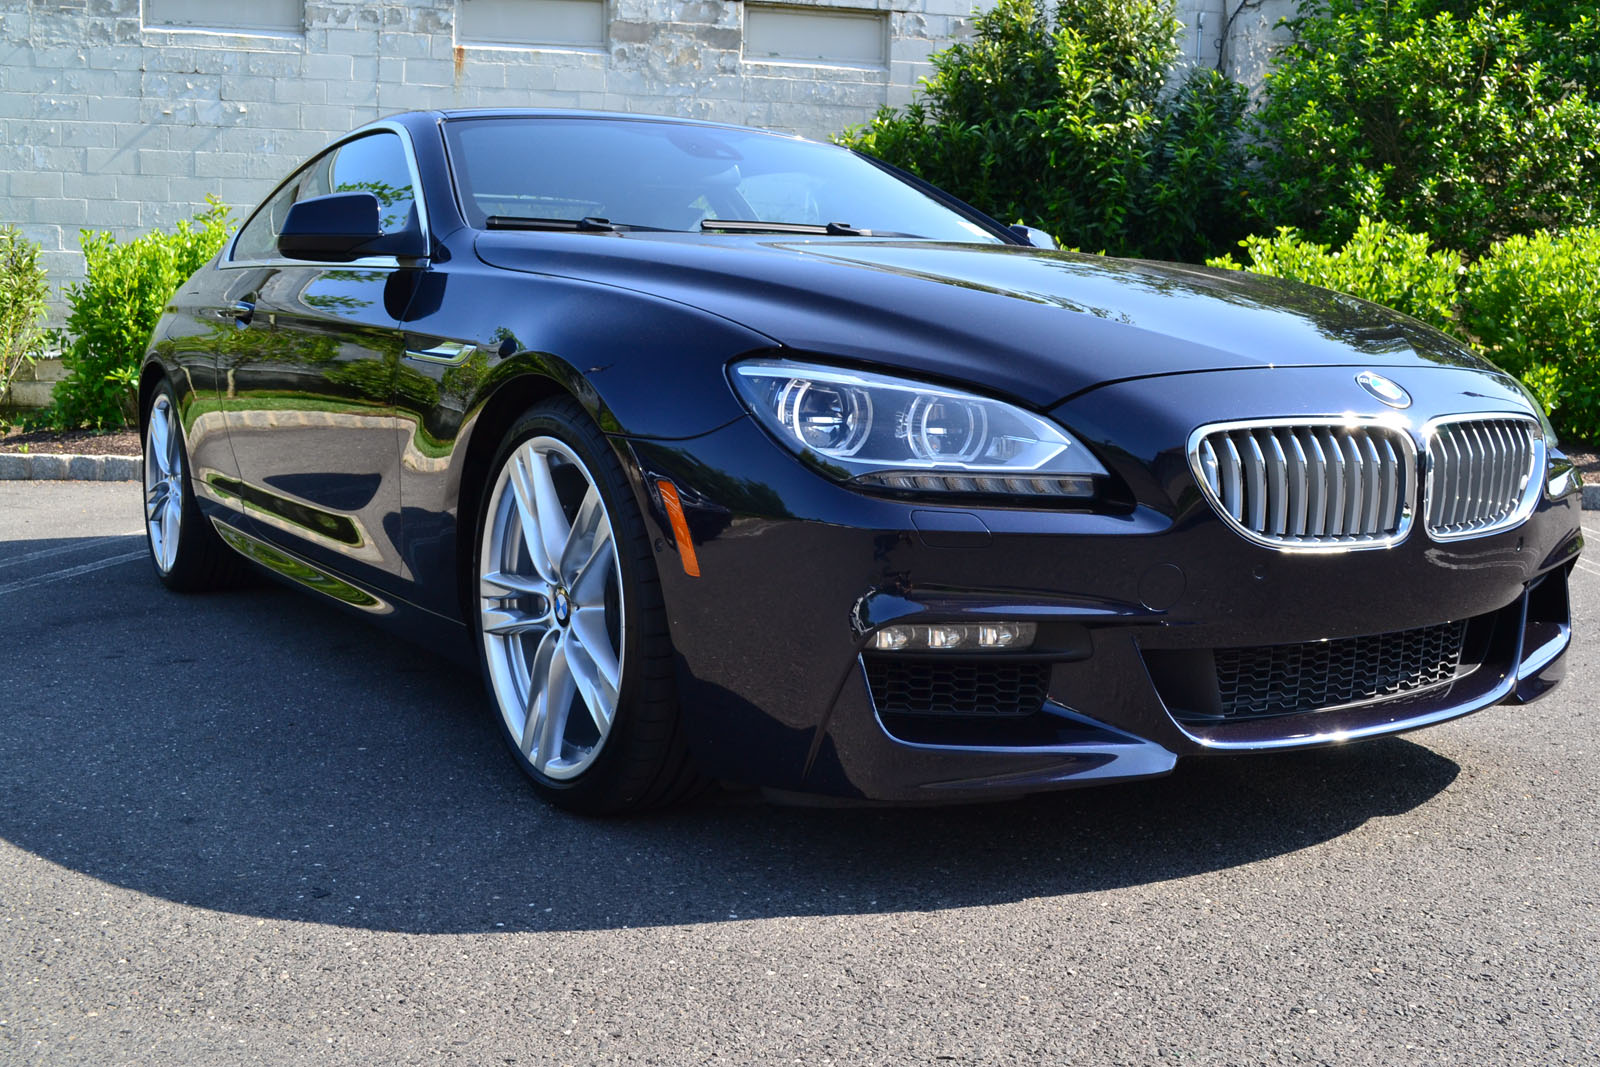 BMW I MSport Coupe PreOwned - Bmw 6501 price